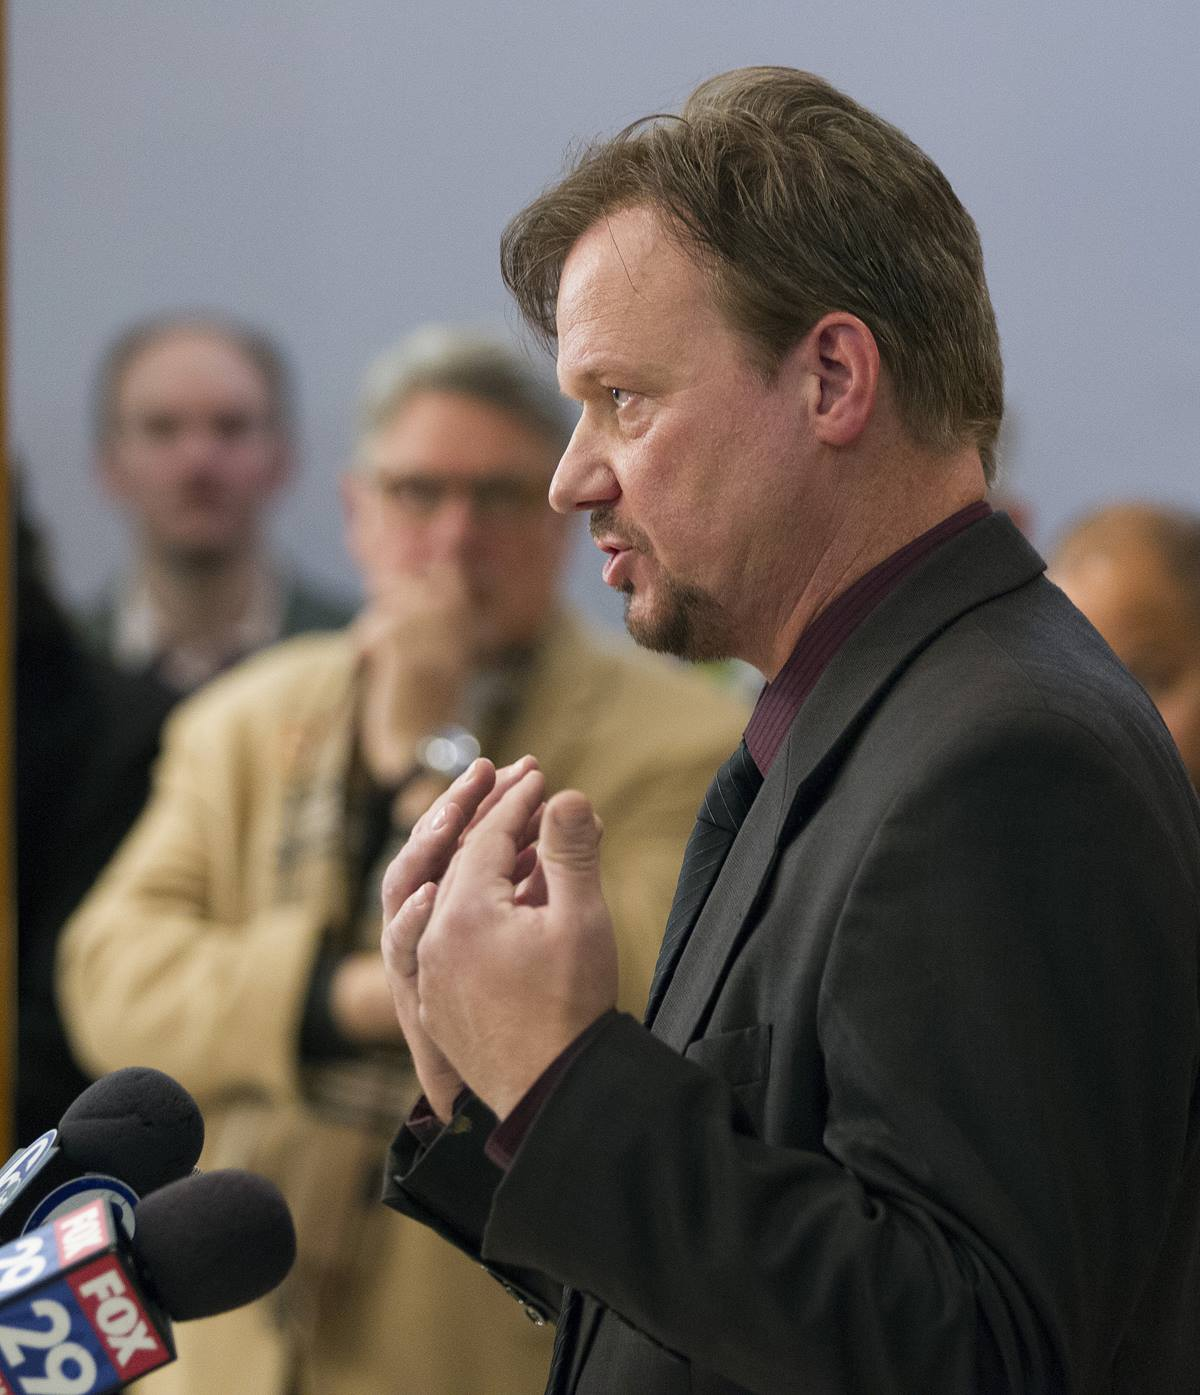 An appeal has been filed with the United Methodist Judicial Council on the June 23 decision to reinstate the Rev. Frank Schaefer's ordination credentials. Judicial Council will meet in October.